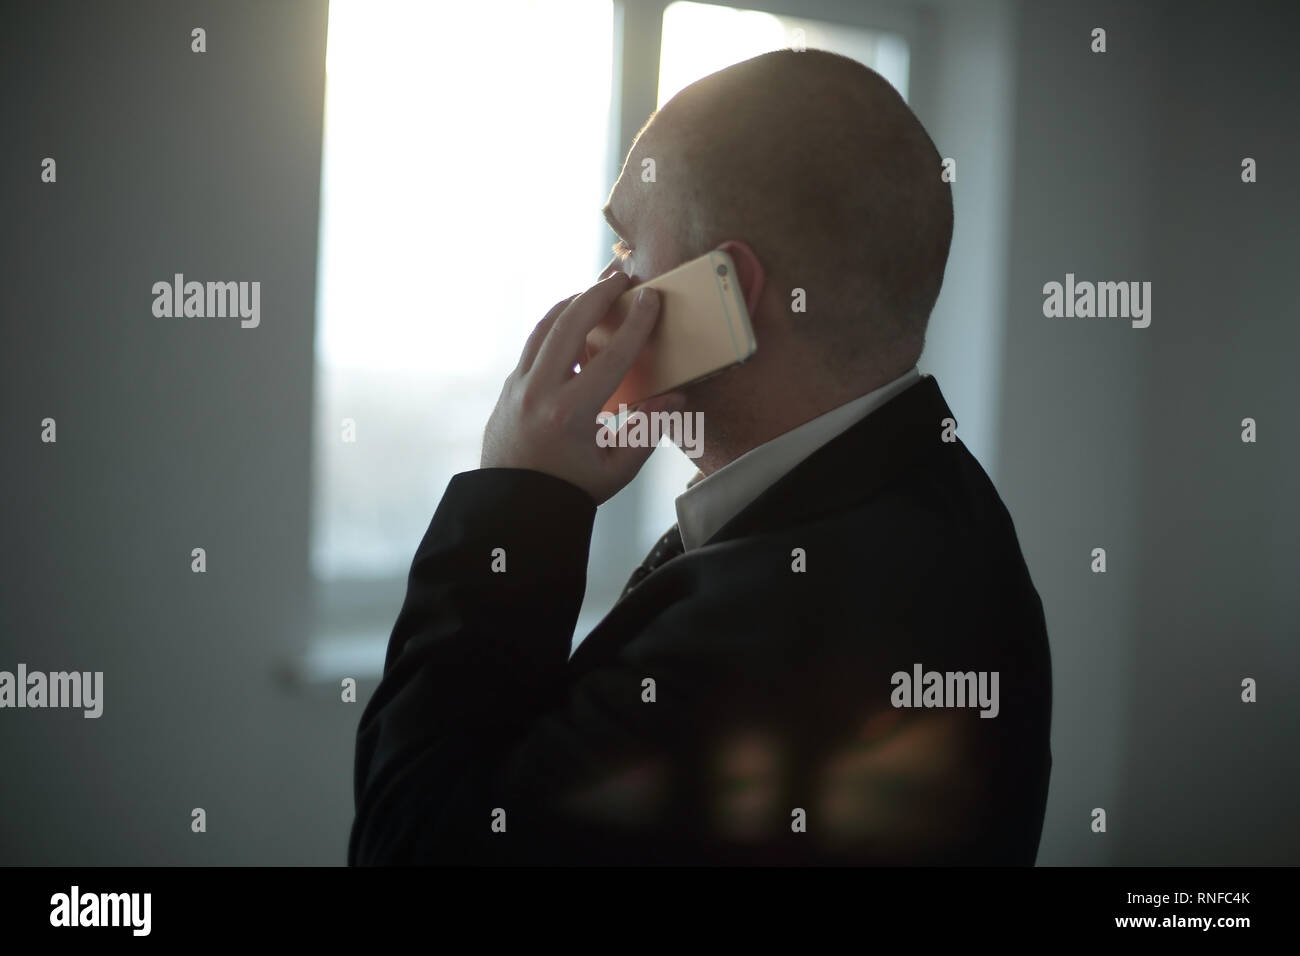 close up. businessman talking on smartphone, on blurred background of office window. - Stock Image